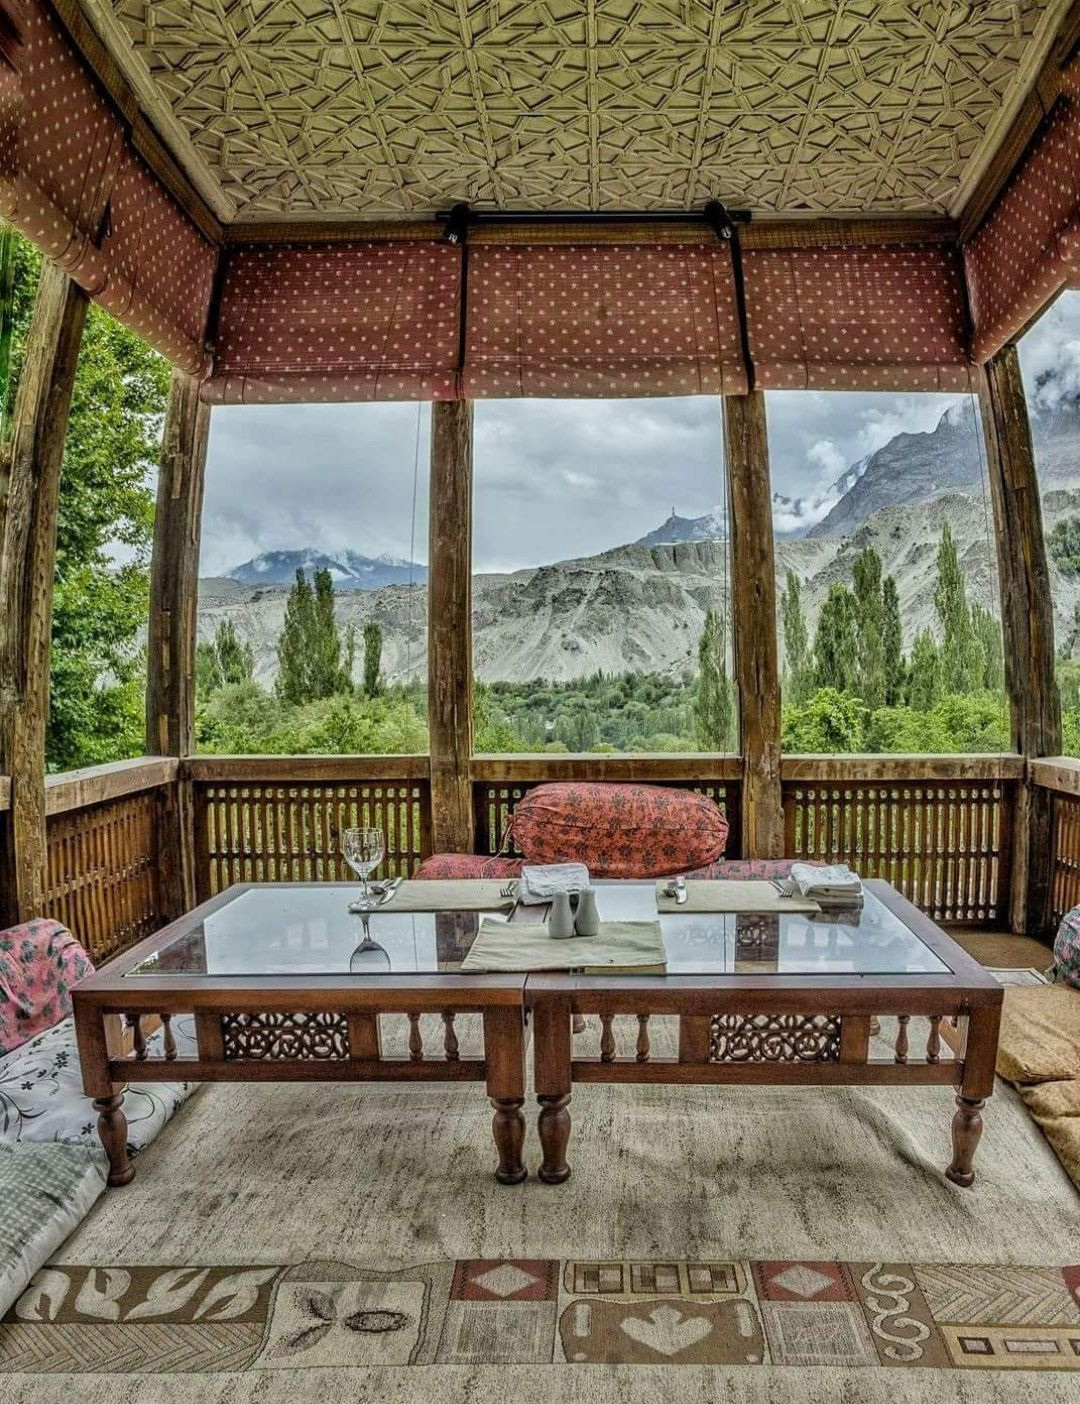 Khalpu skardu gilgit pakistan tourism and travel pinterest destino